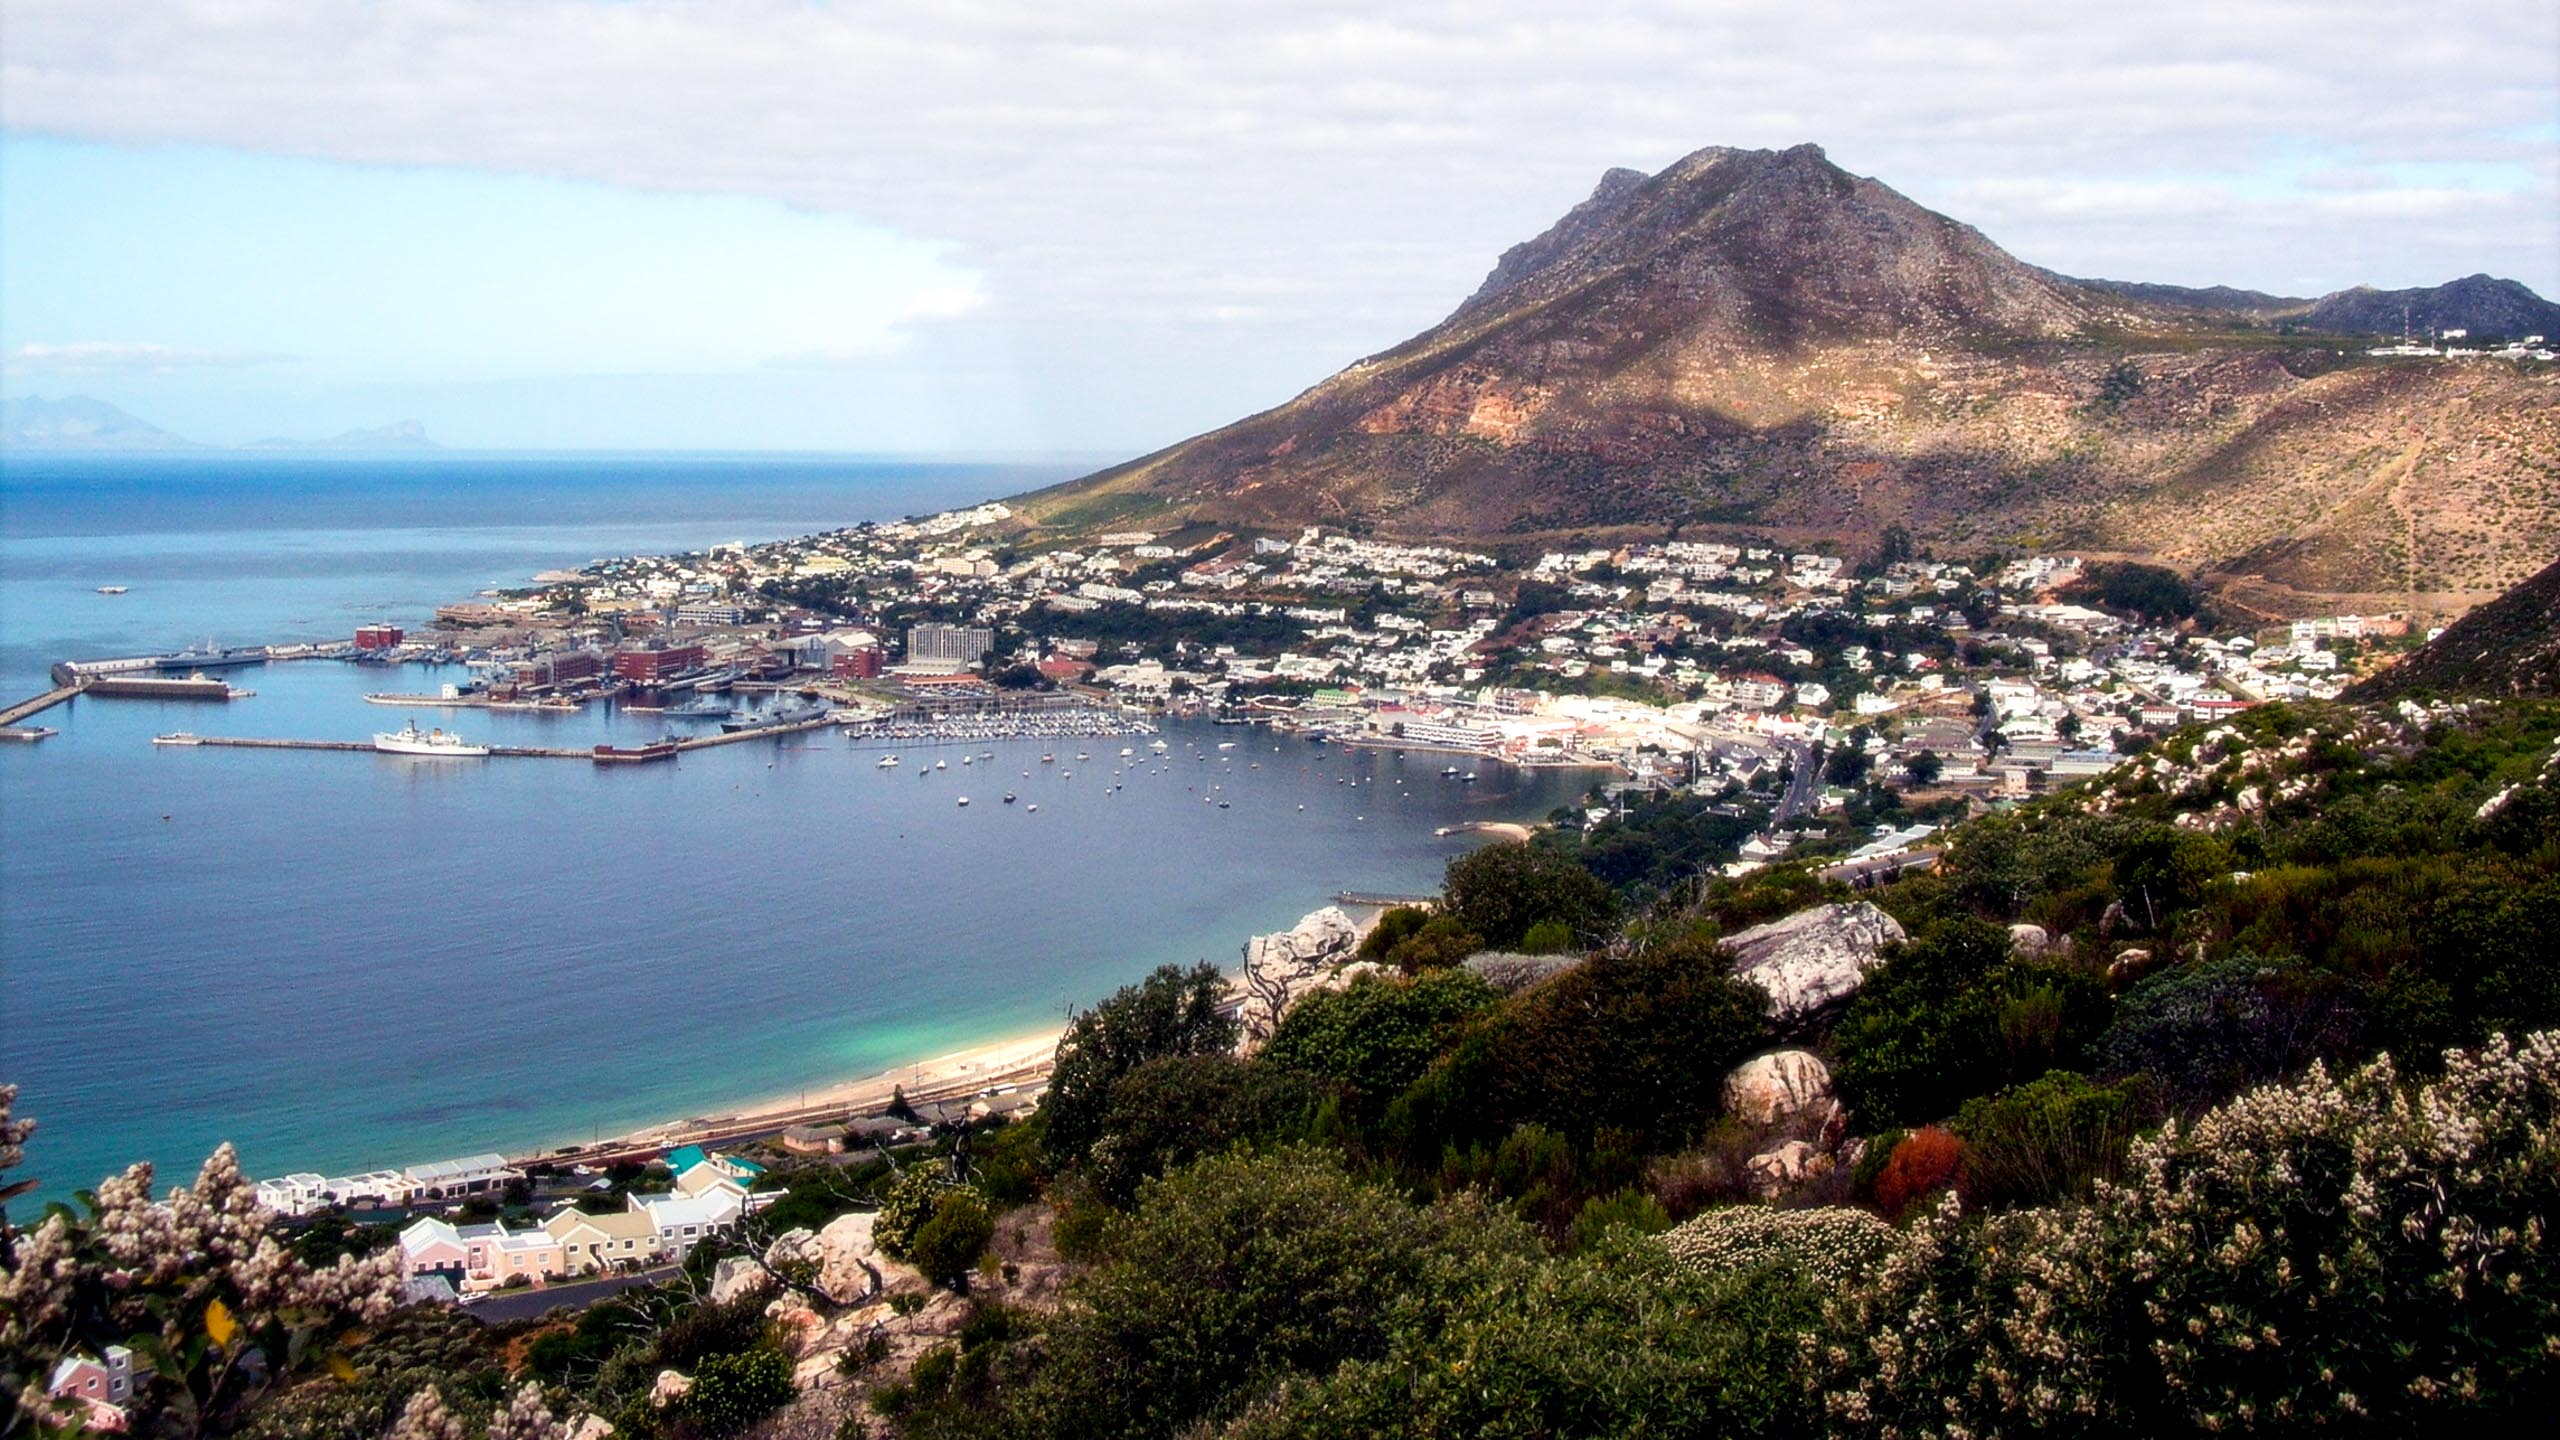 Coastal town in South Africa